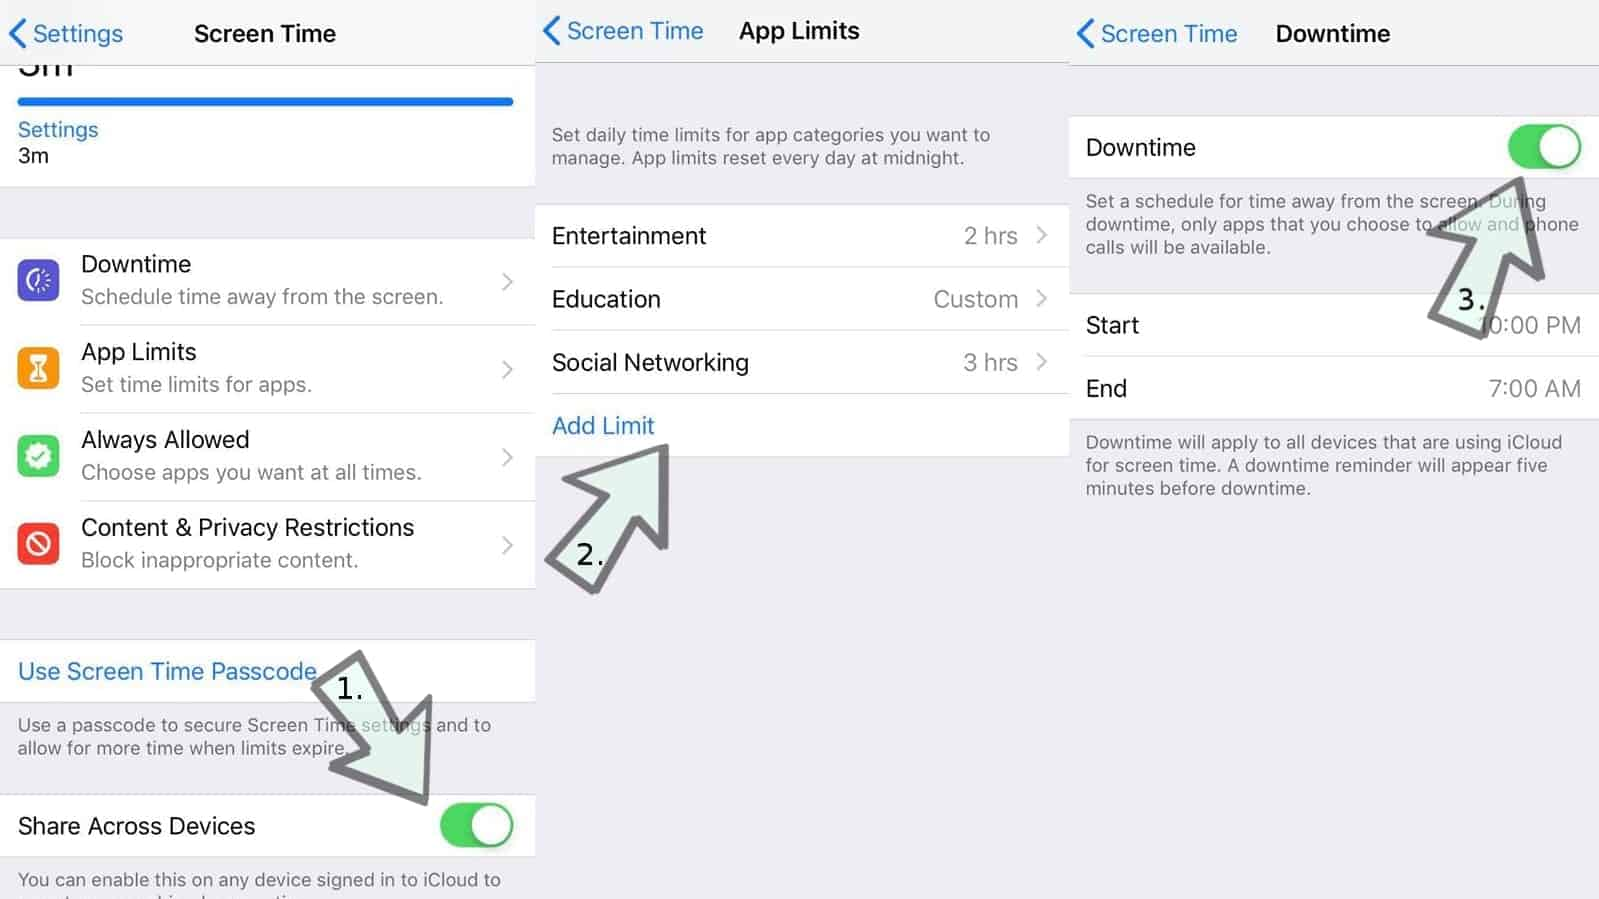 Steps to set app limits and downtime in Screen Time iOS 12